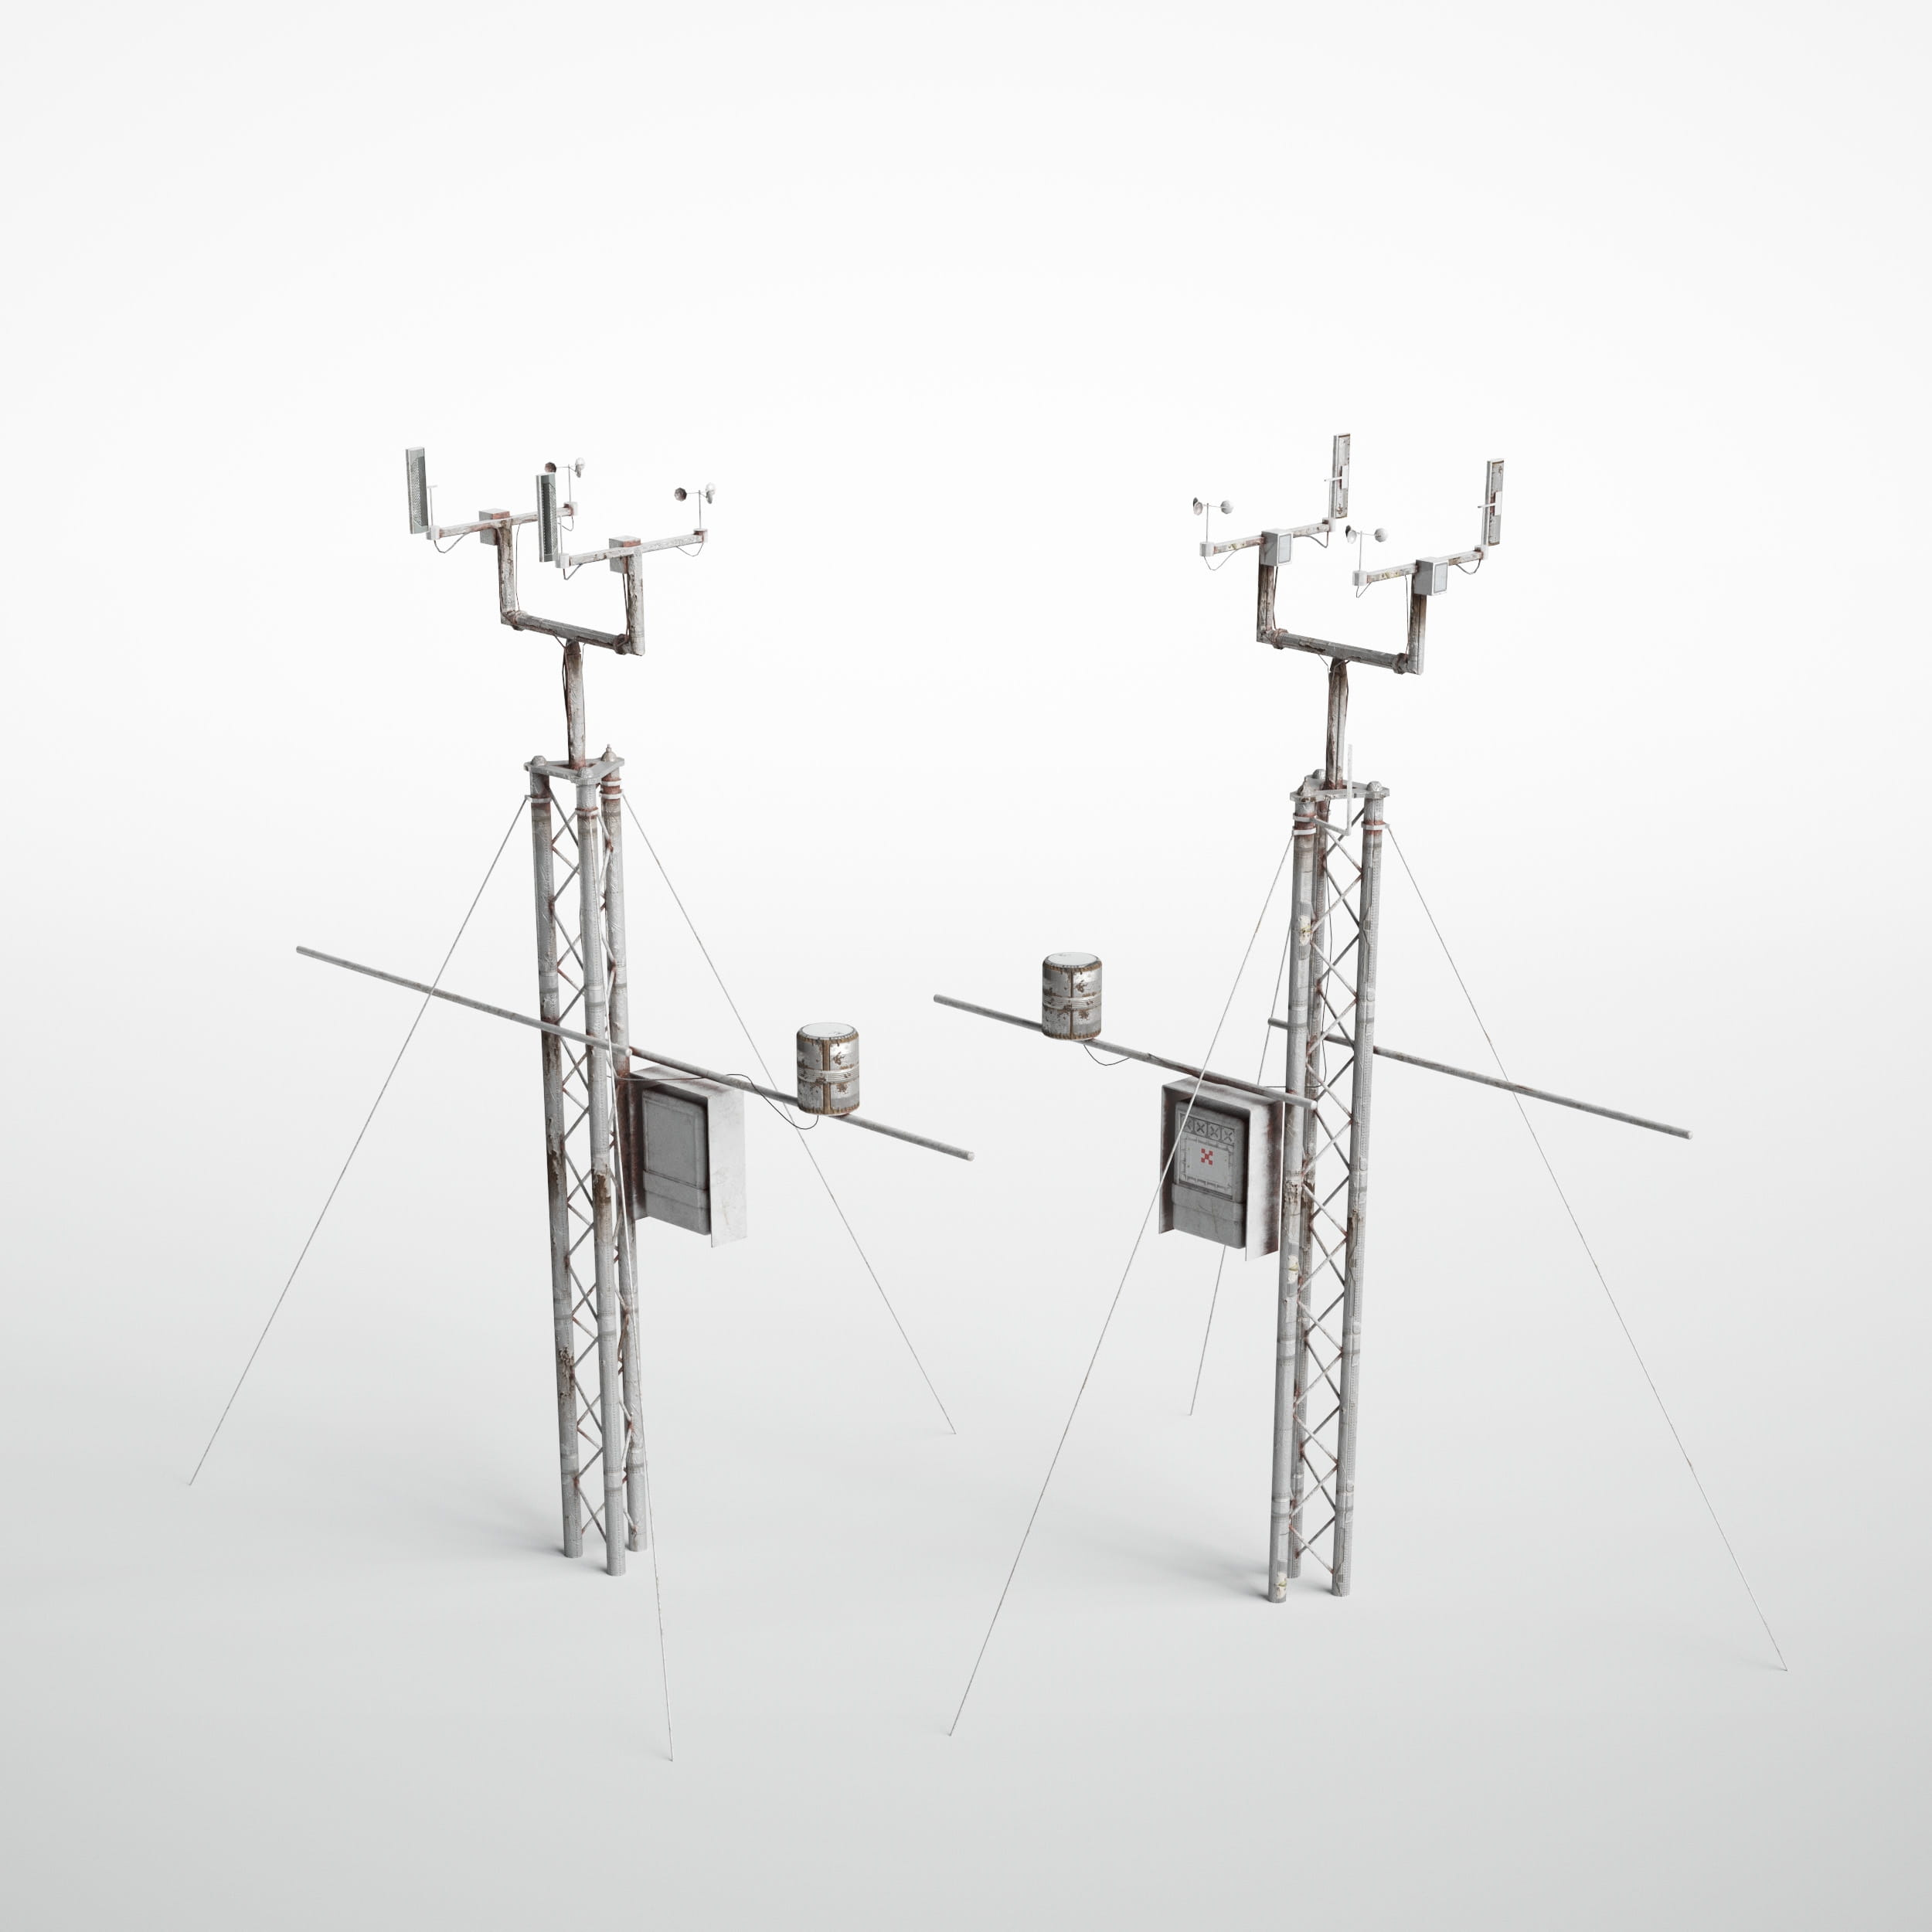 automatic weather station 33 AM227 Archmodels